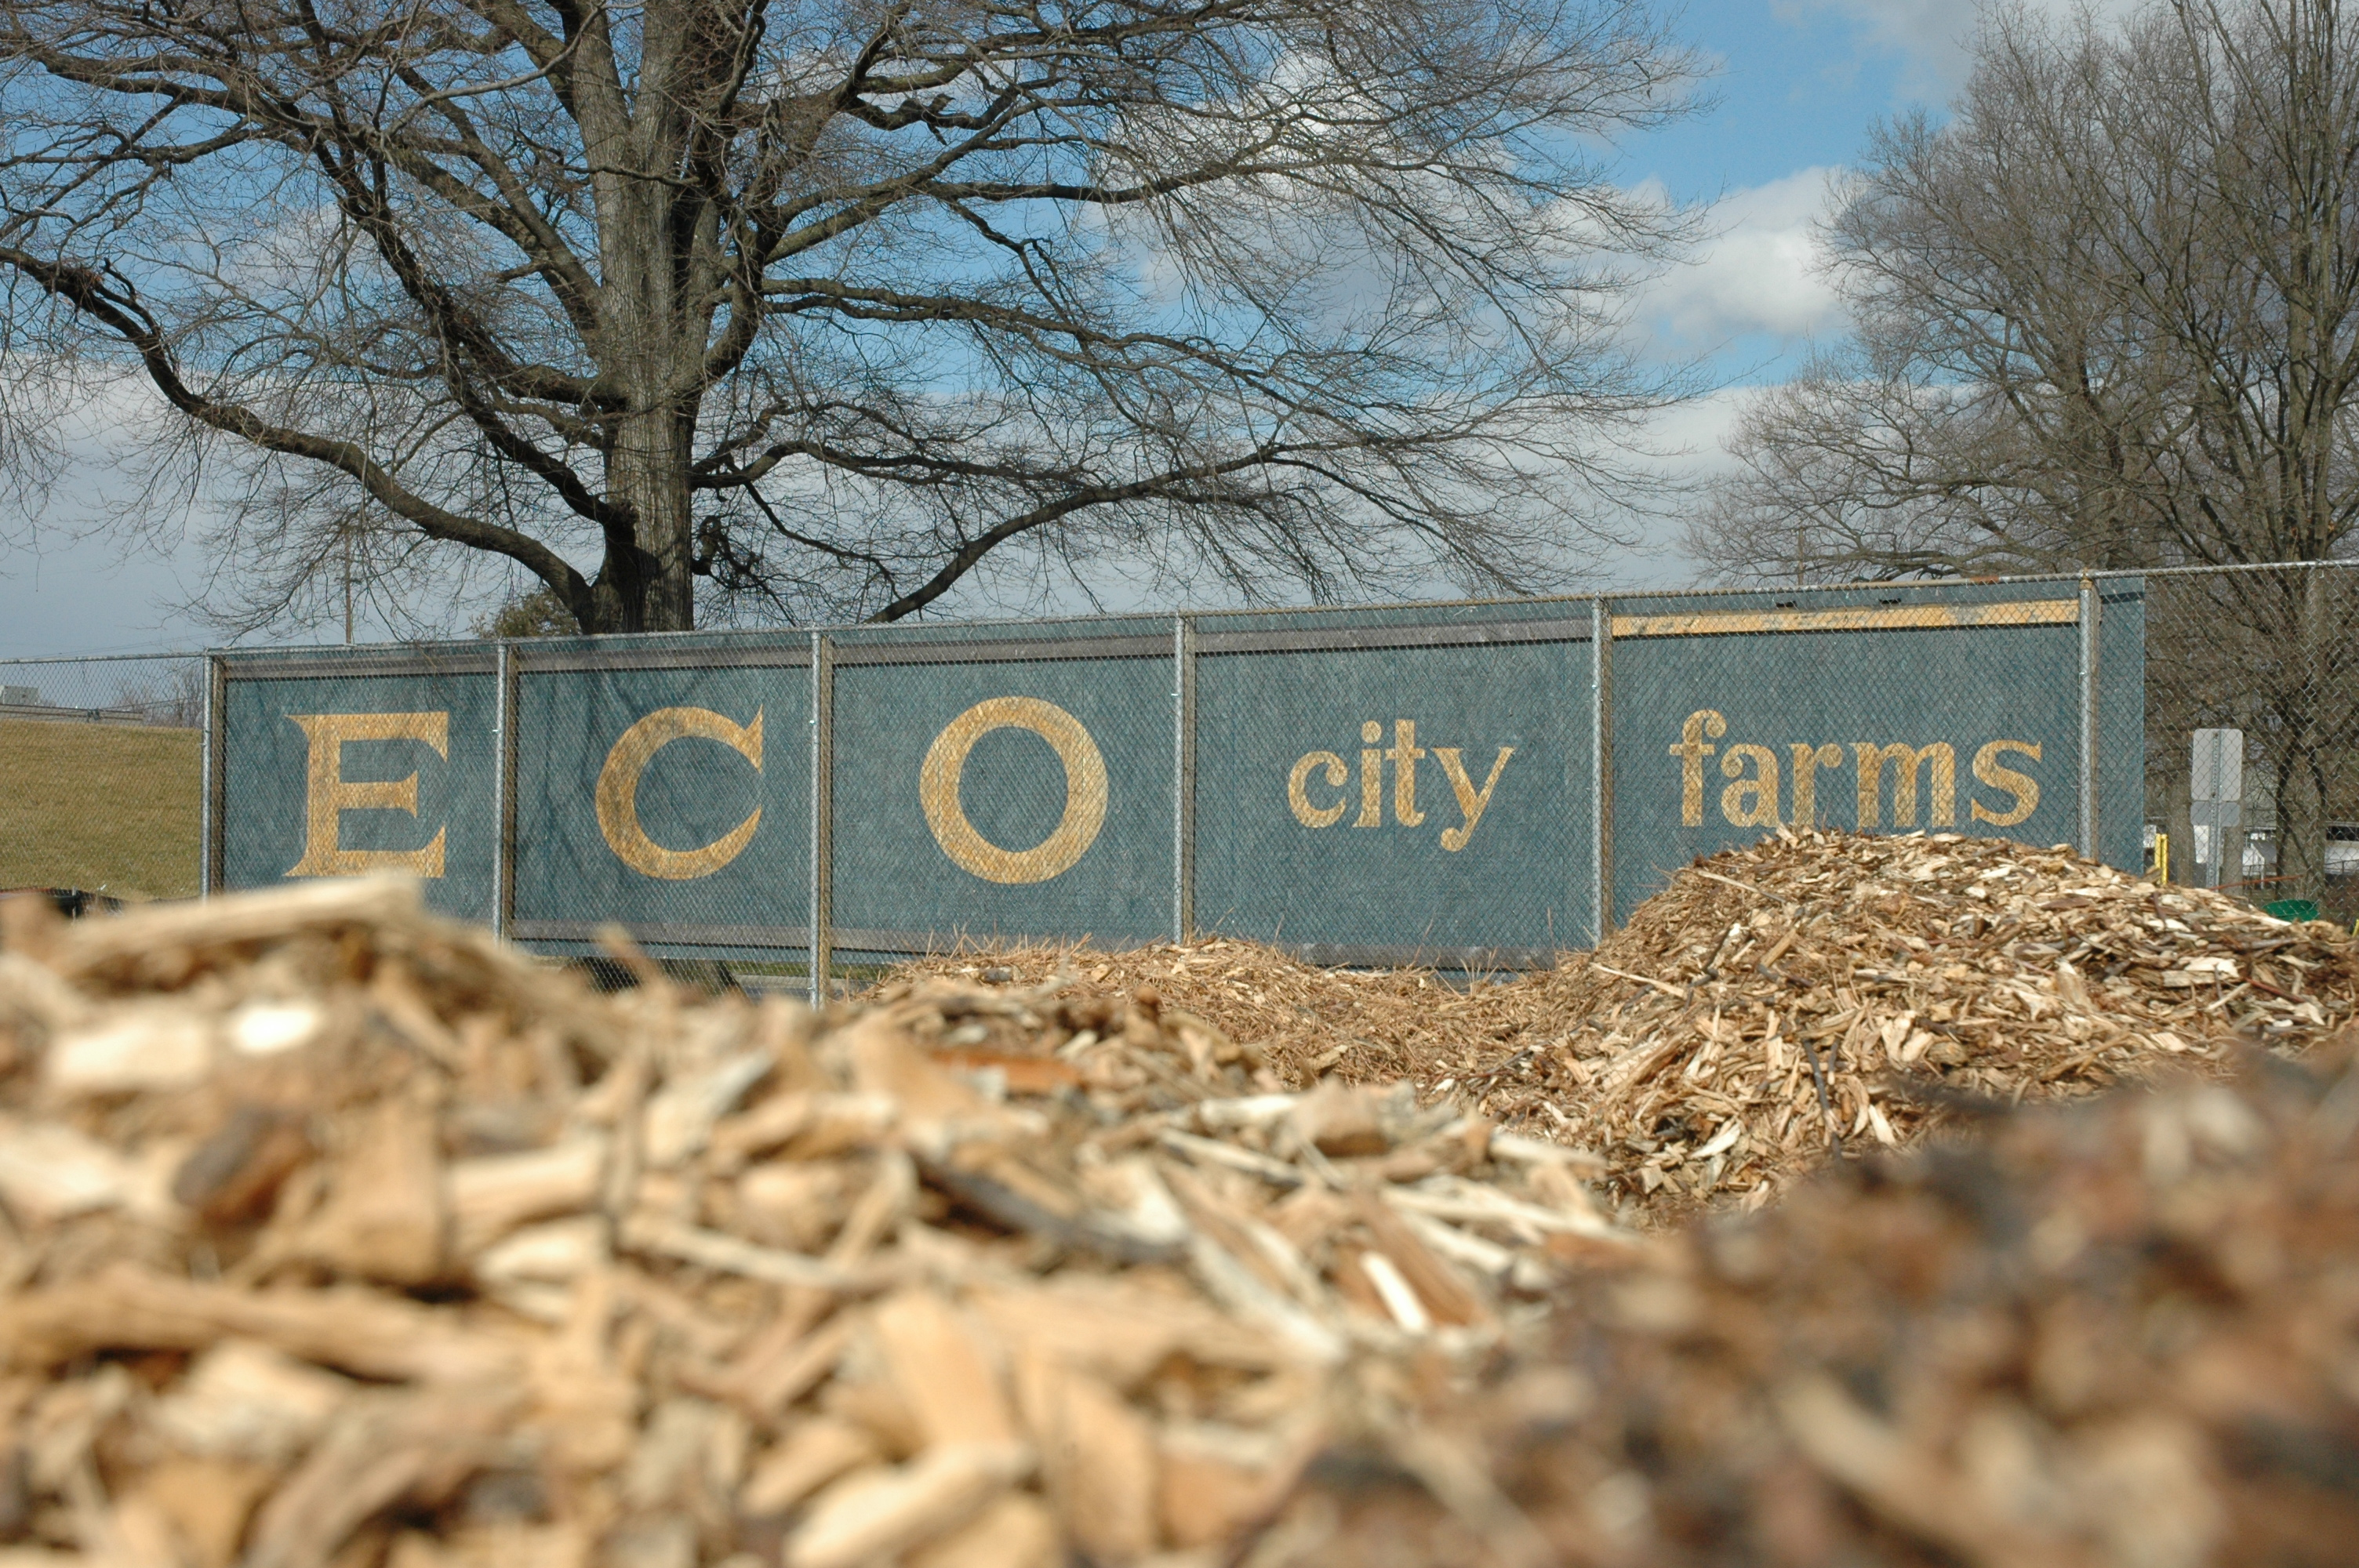 Not long ago, ECO City Farms expanded its operation to include old tennis courts, where wood chips await use.